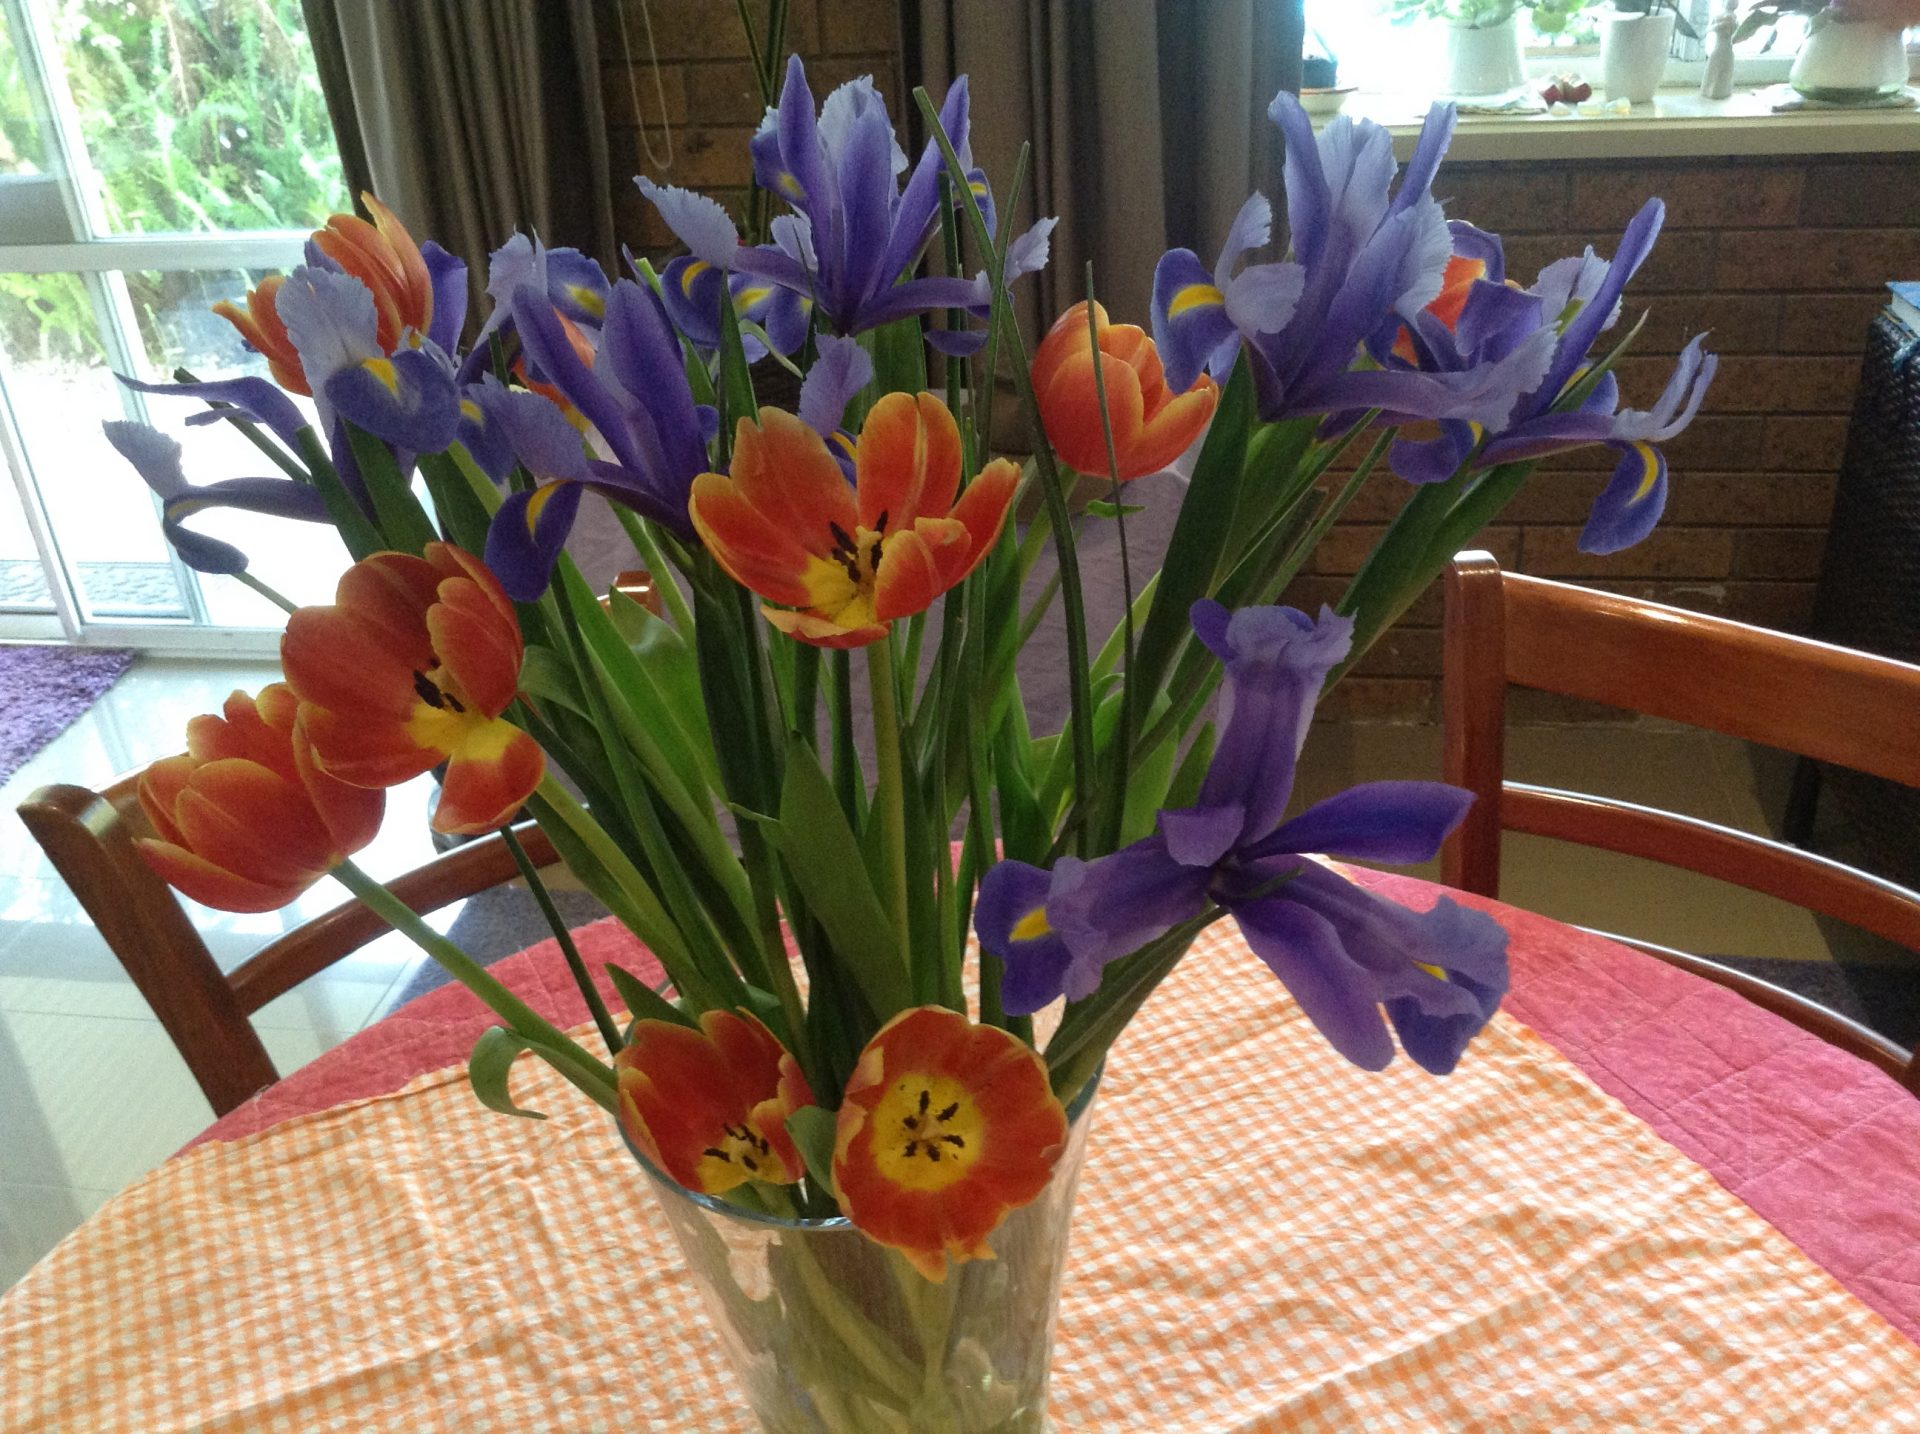 Cut flowers of Tulips and Dutch Iris'. By Trisha Haddock